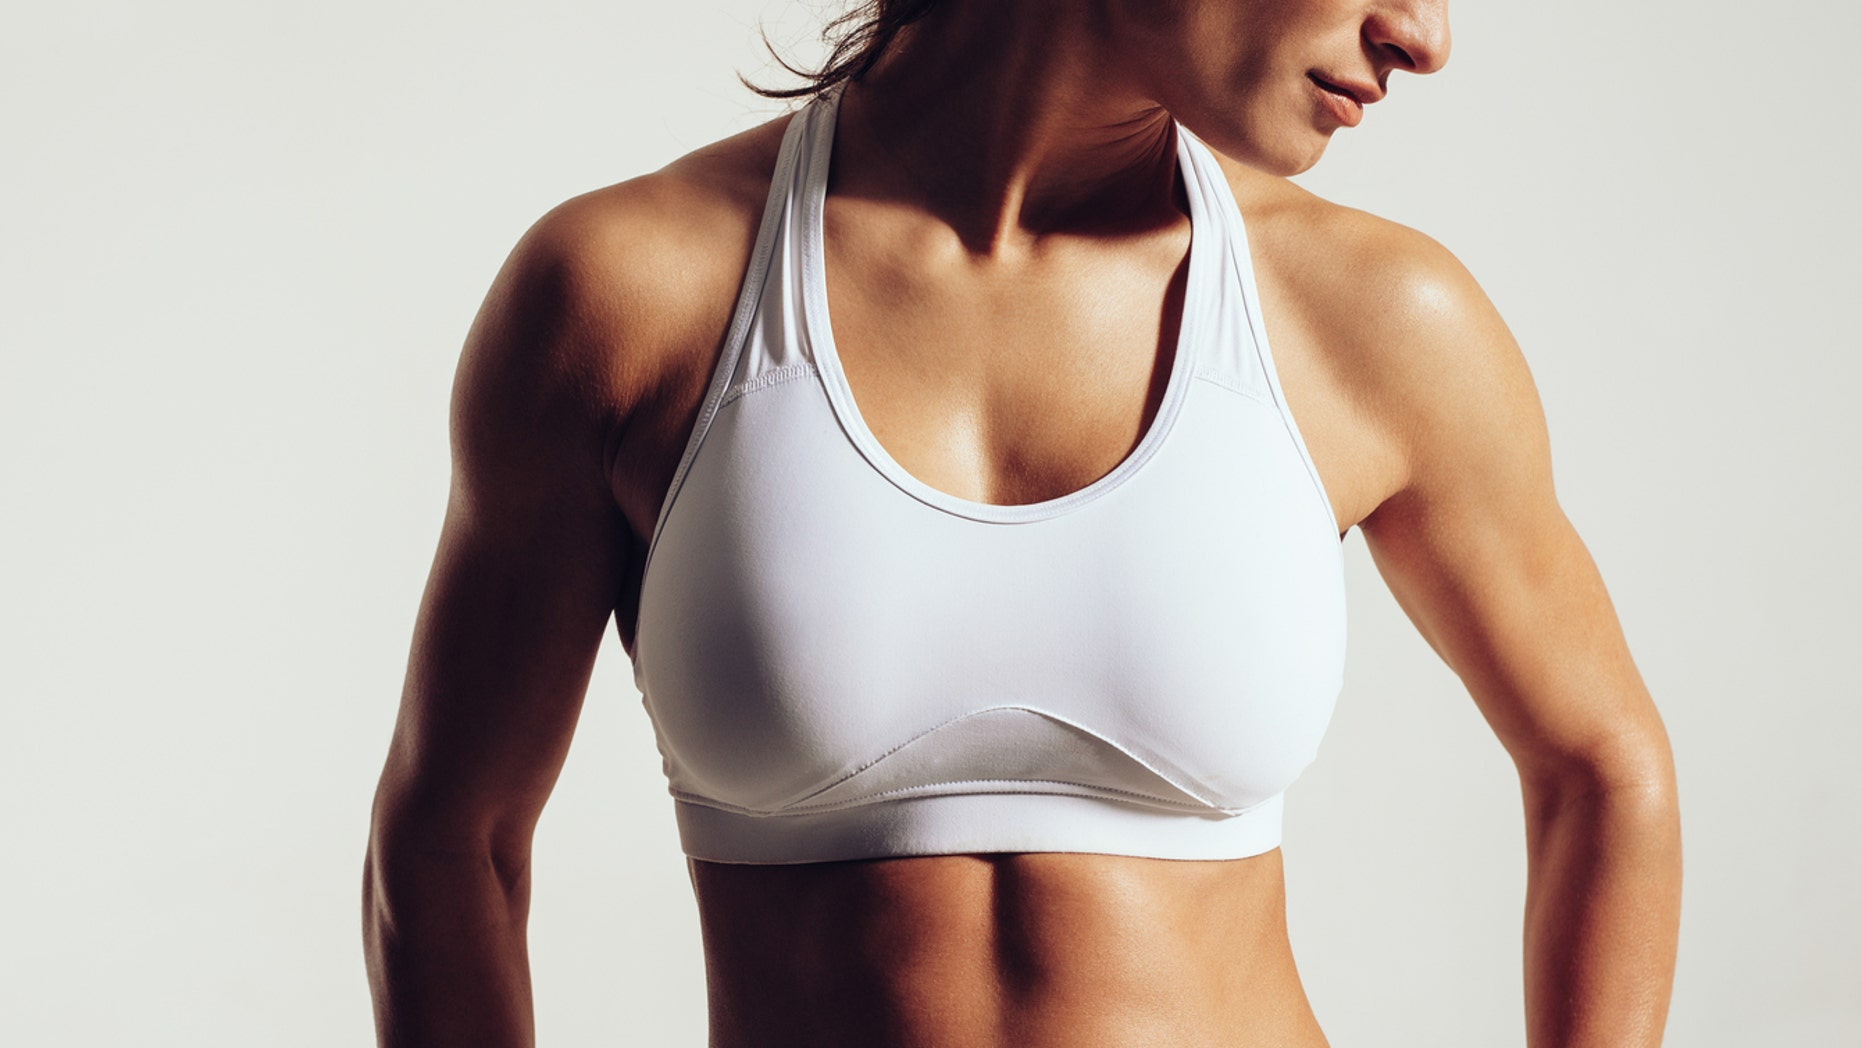 Portrait of fit woman in sports bra with muscular body against grey background. Close-up studio shot of female fitness model in sports wear.